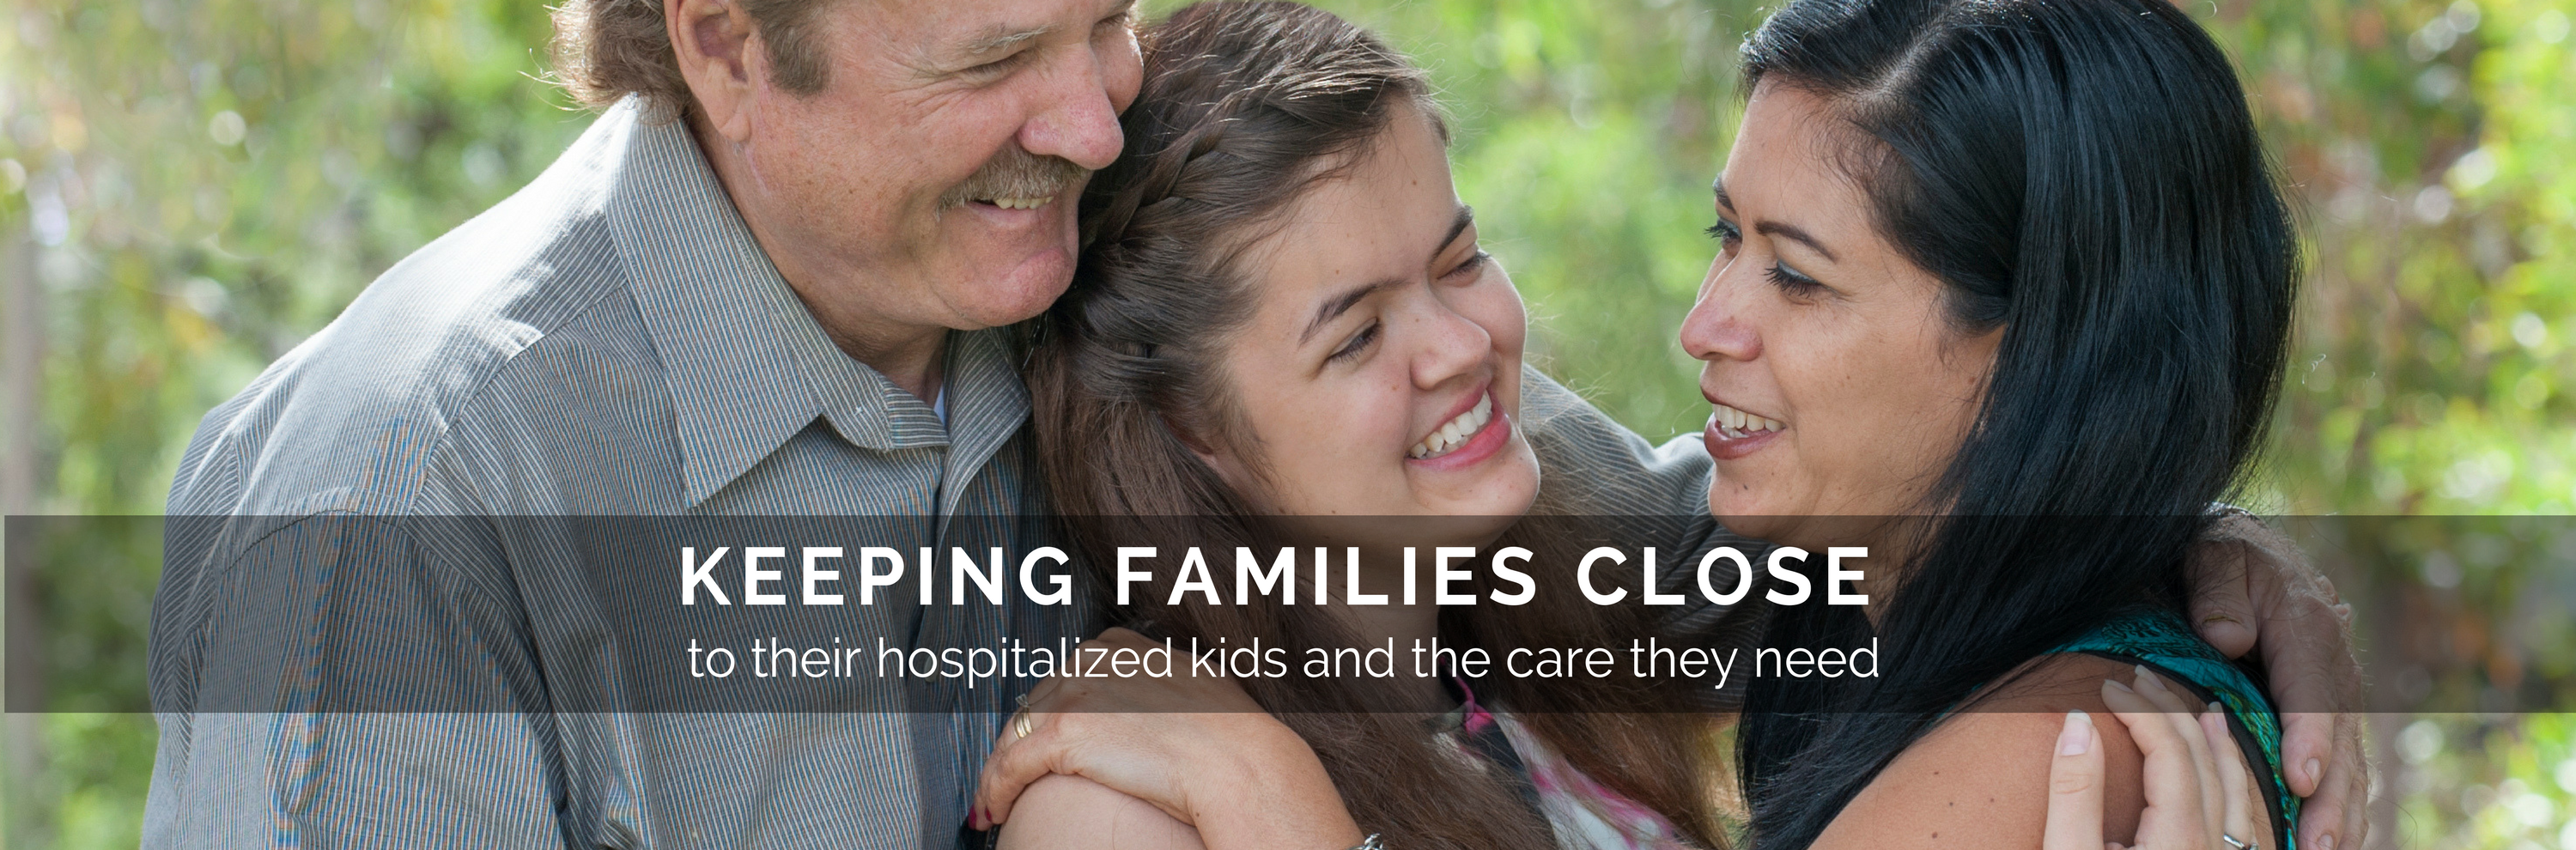 Keeping Families Close